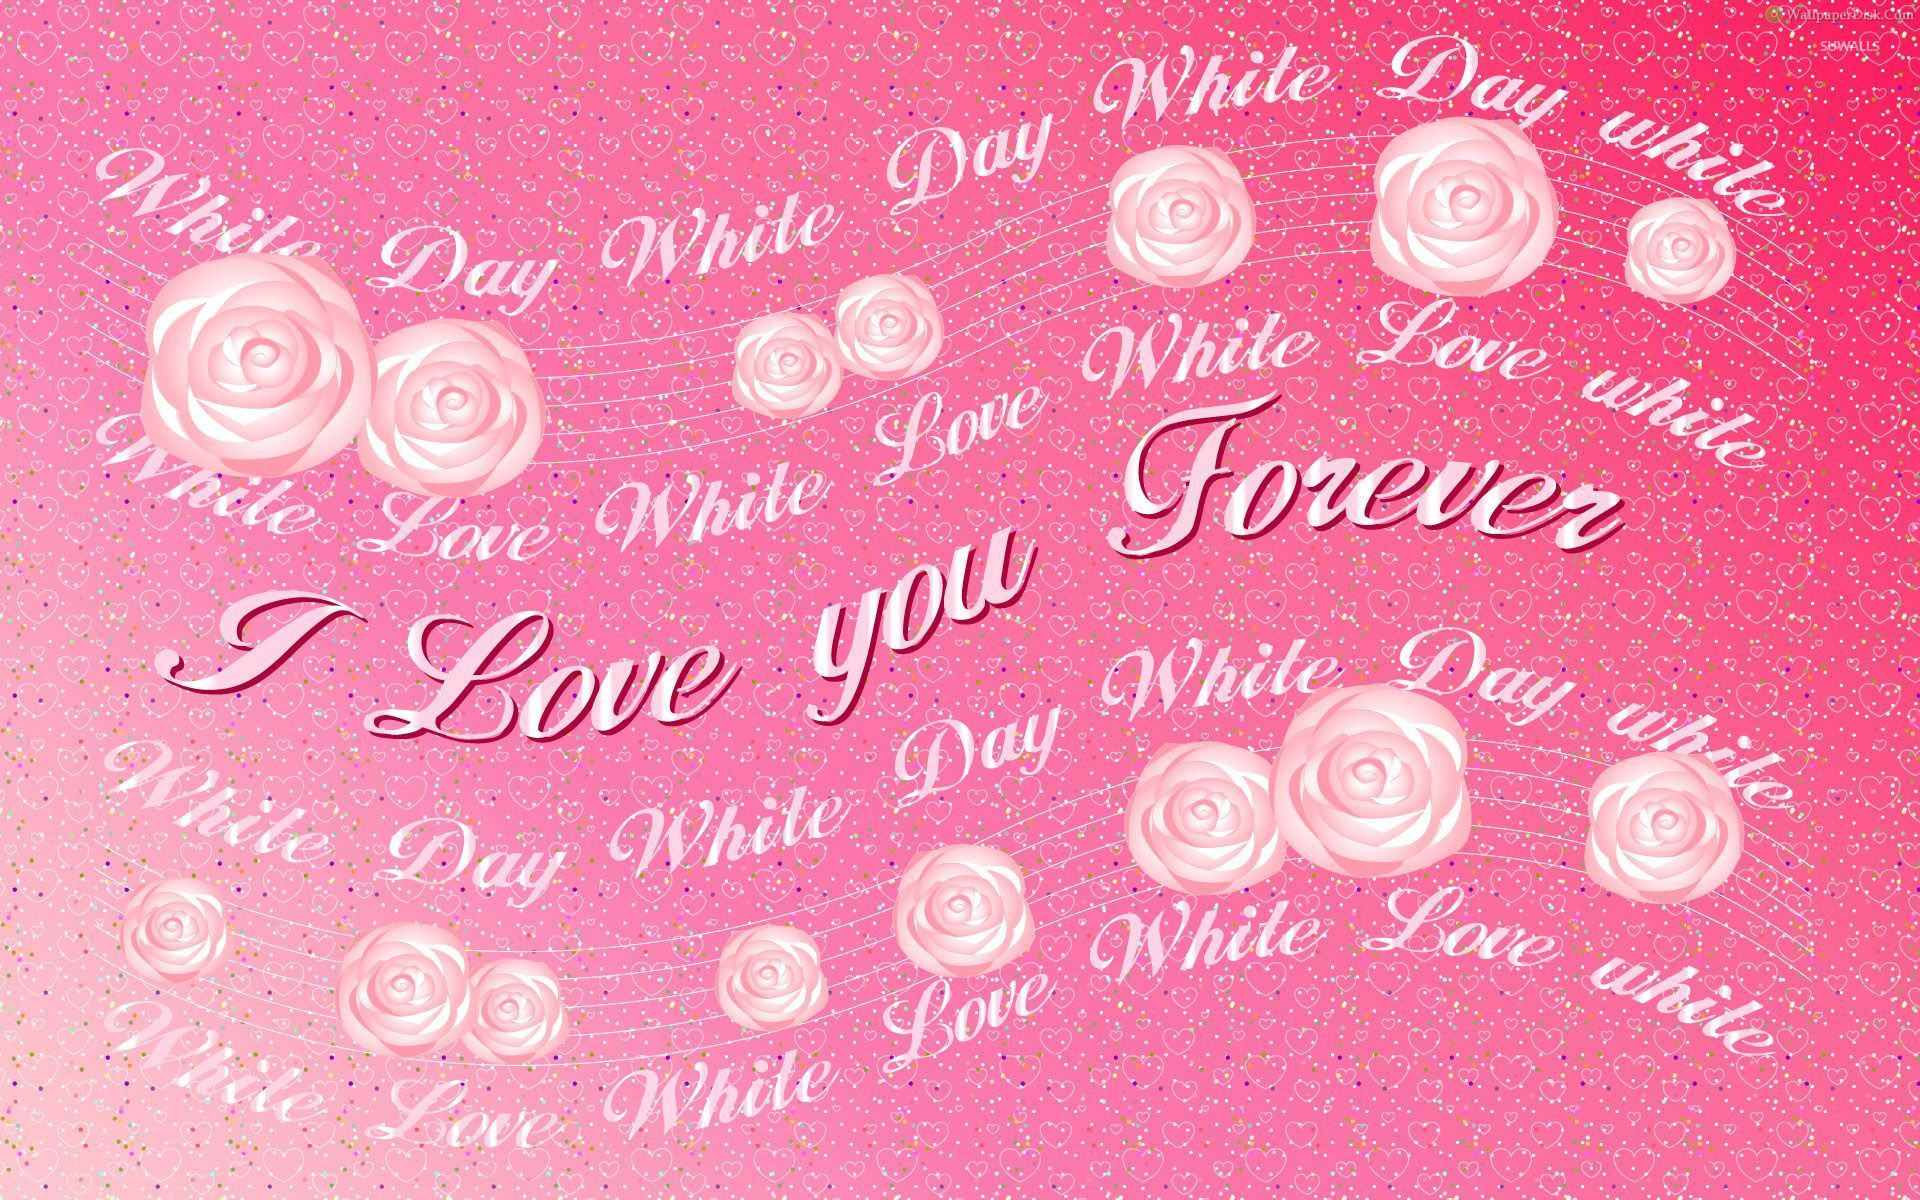 I love you forever wallpaper - Holiday wallpapers - #51343